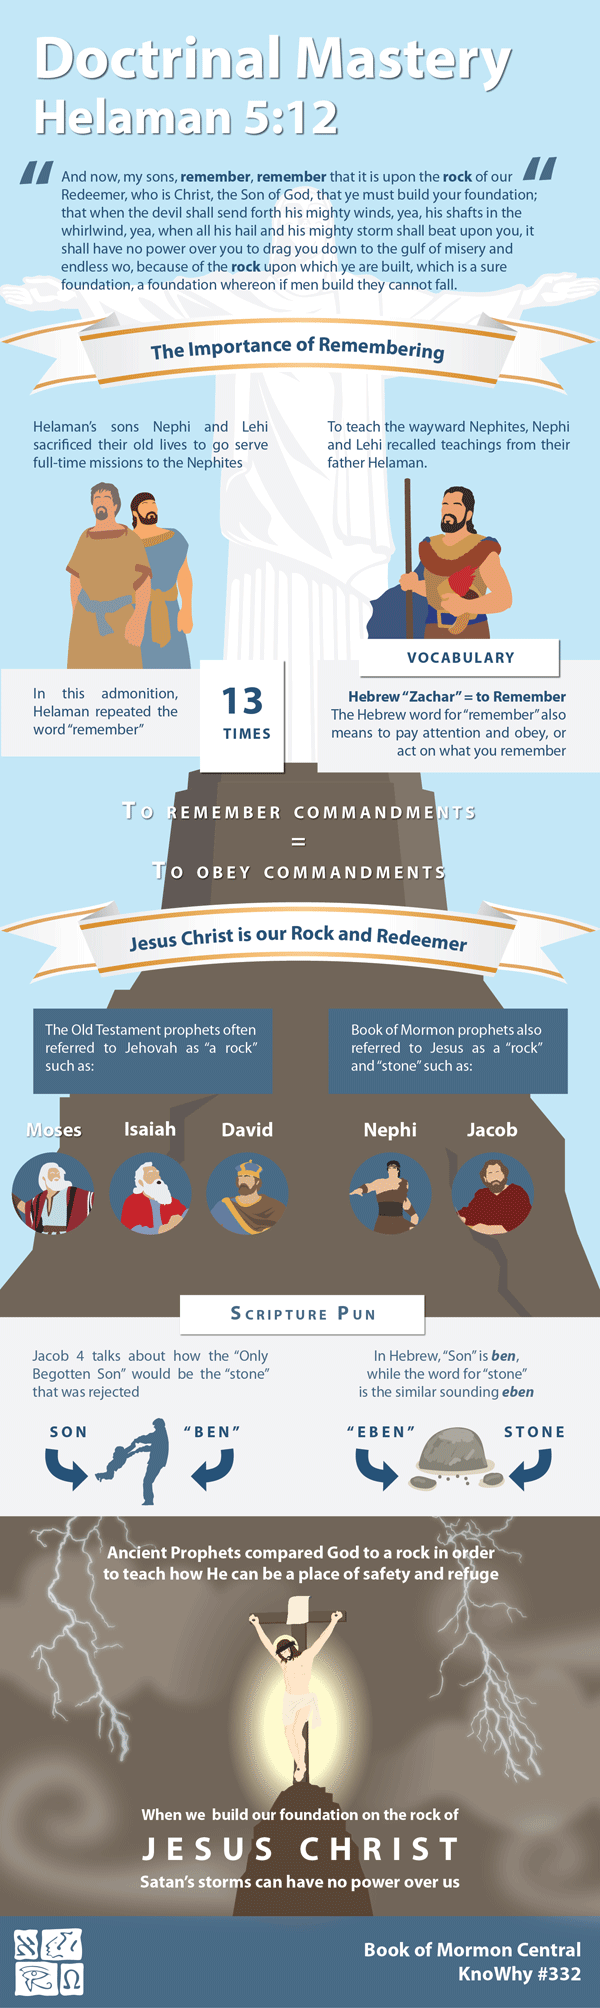 Doctrinal Mastery Helaman 5:12 Infographic by Book of Mormon Central